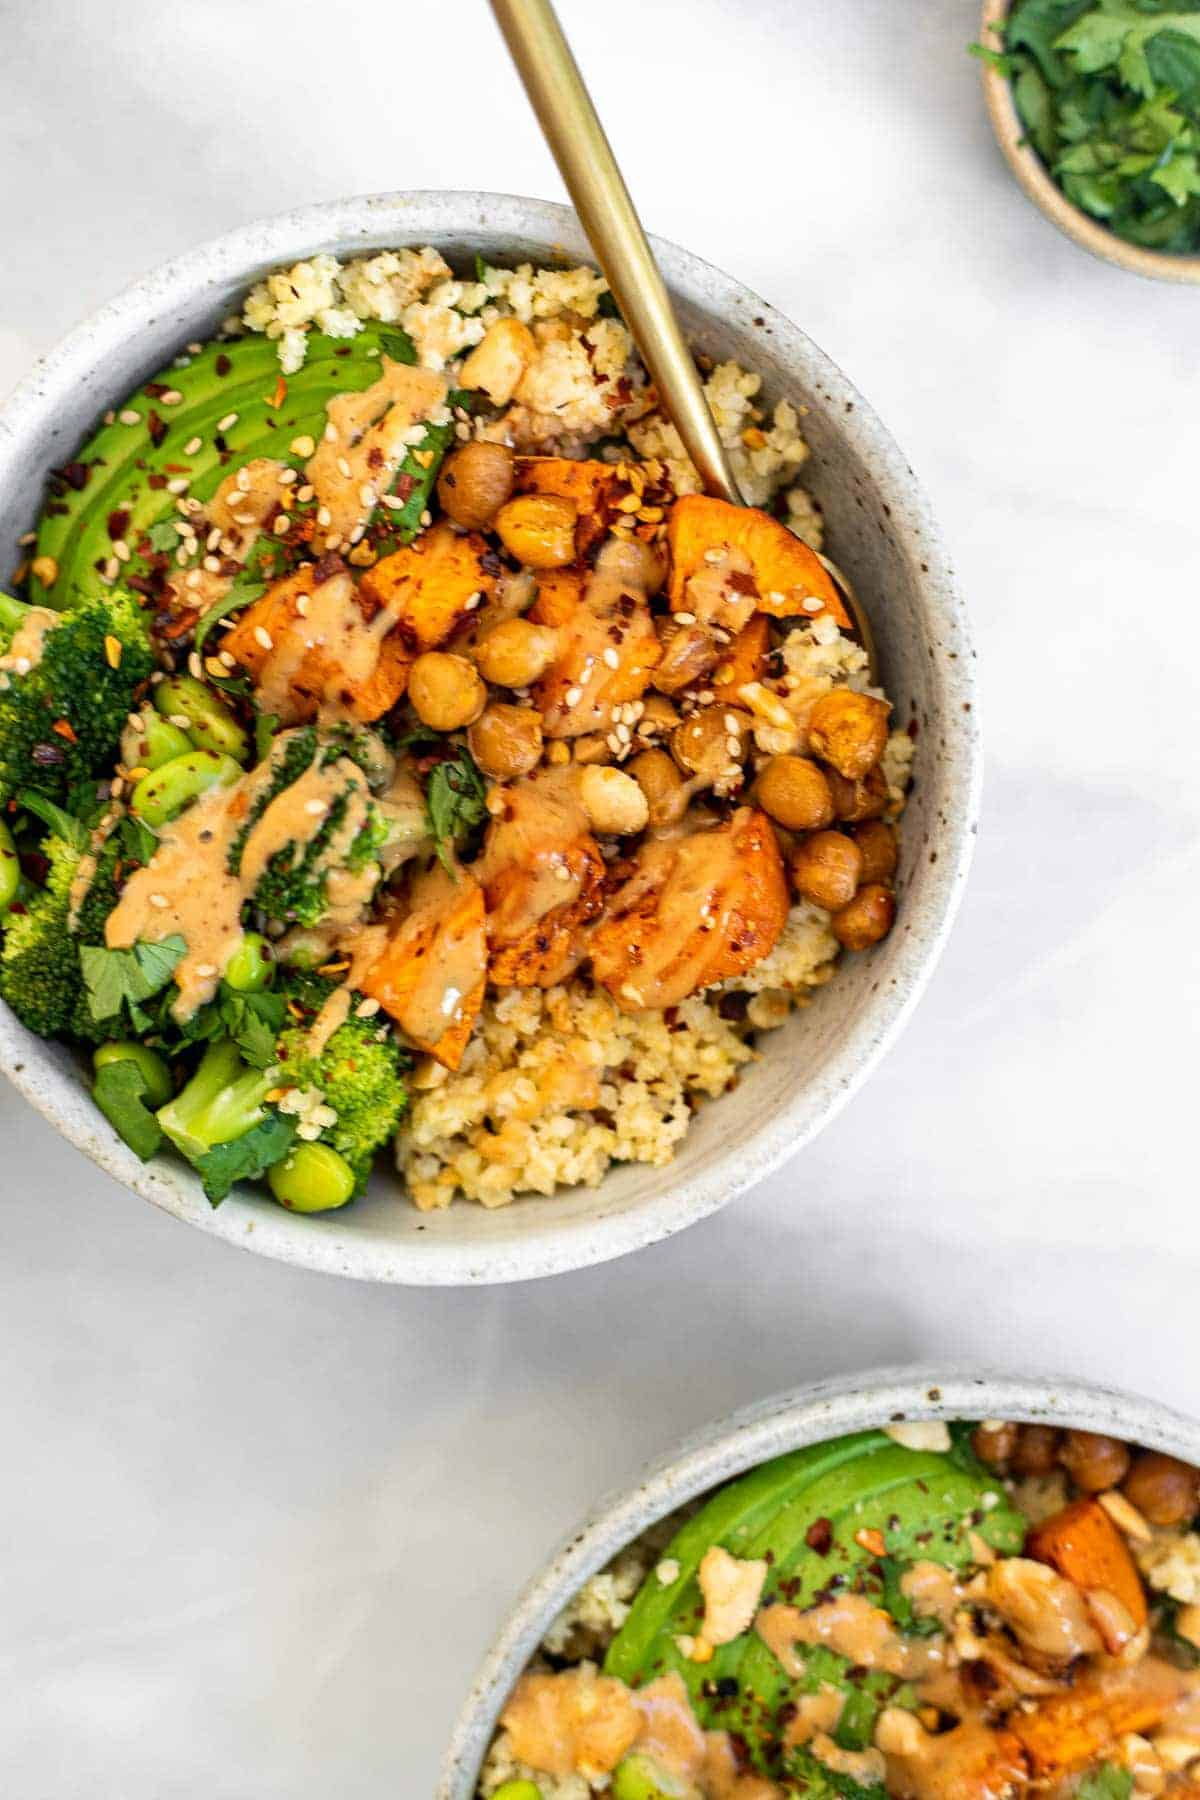 Two buddha bowls with forks on the side with millet and broccoli.